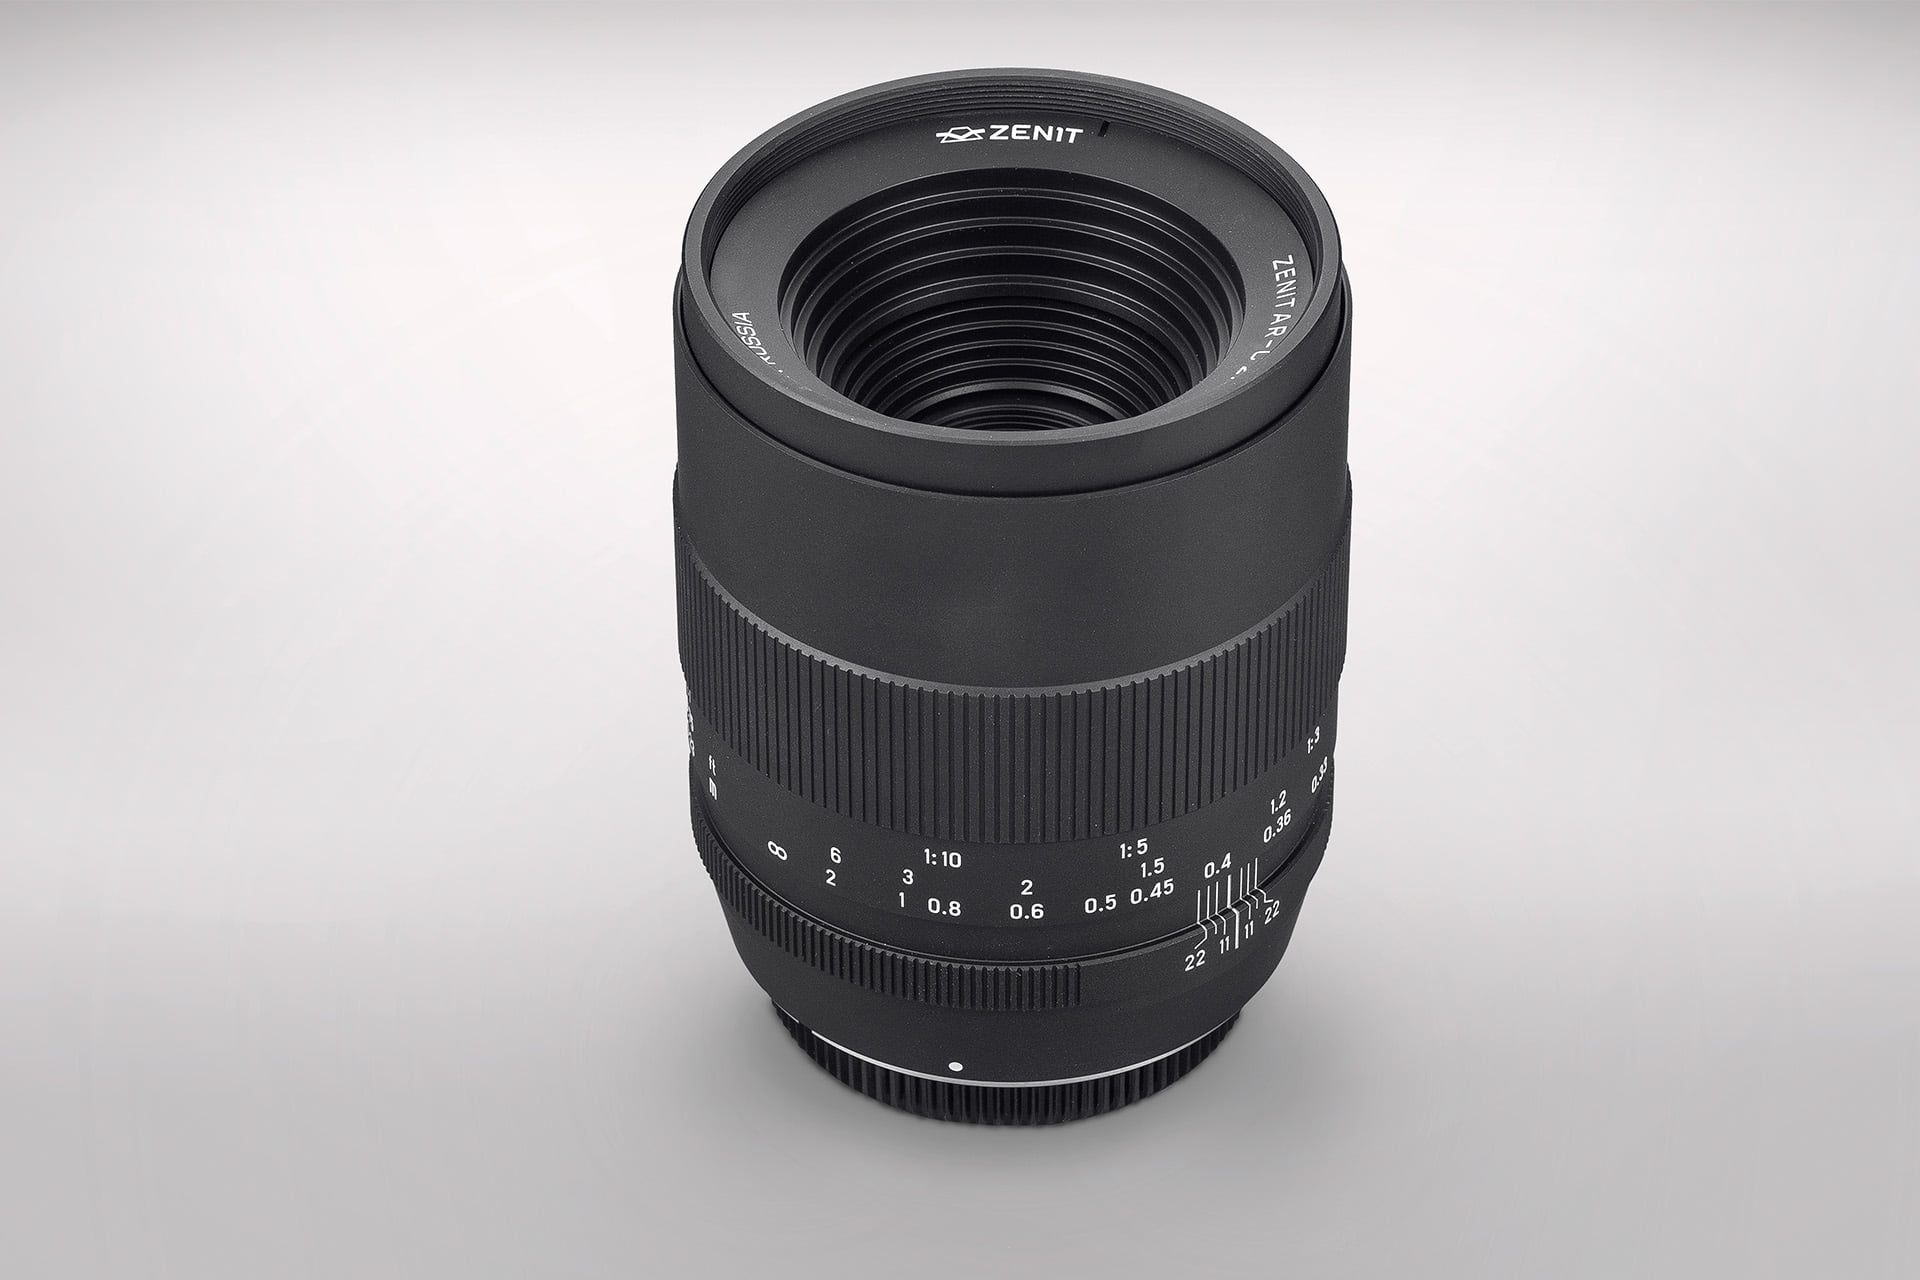 Zenit Announced A New Selena 58mm F 1 9 Lens Photo Rumors